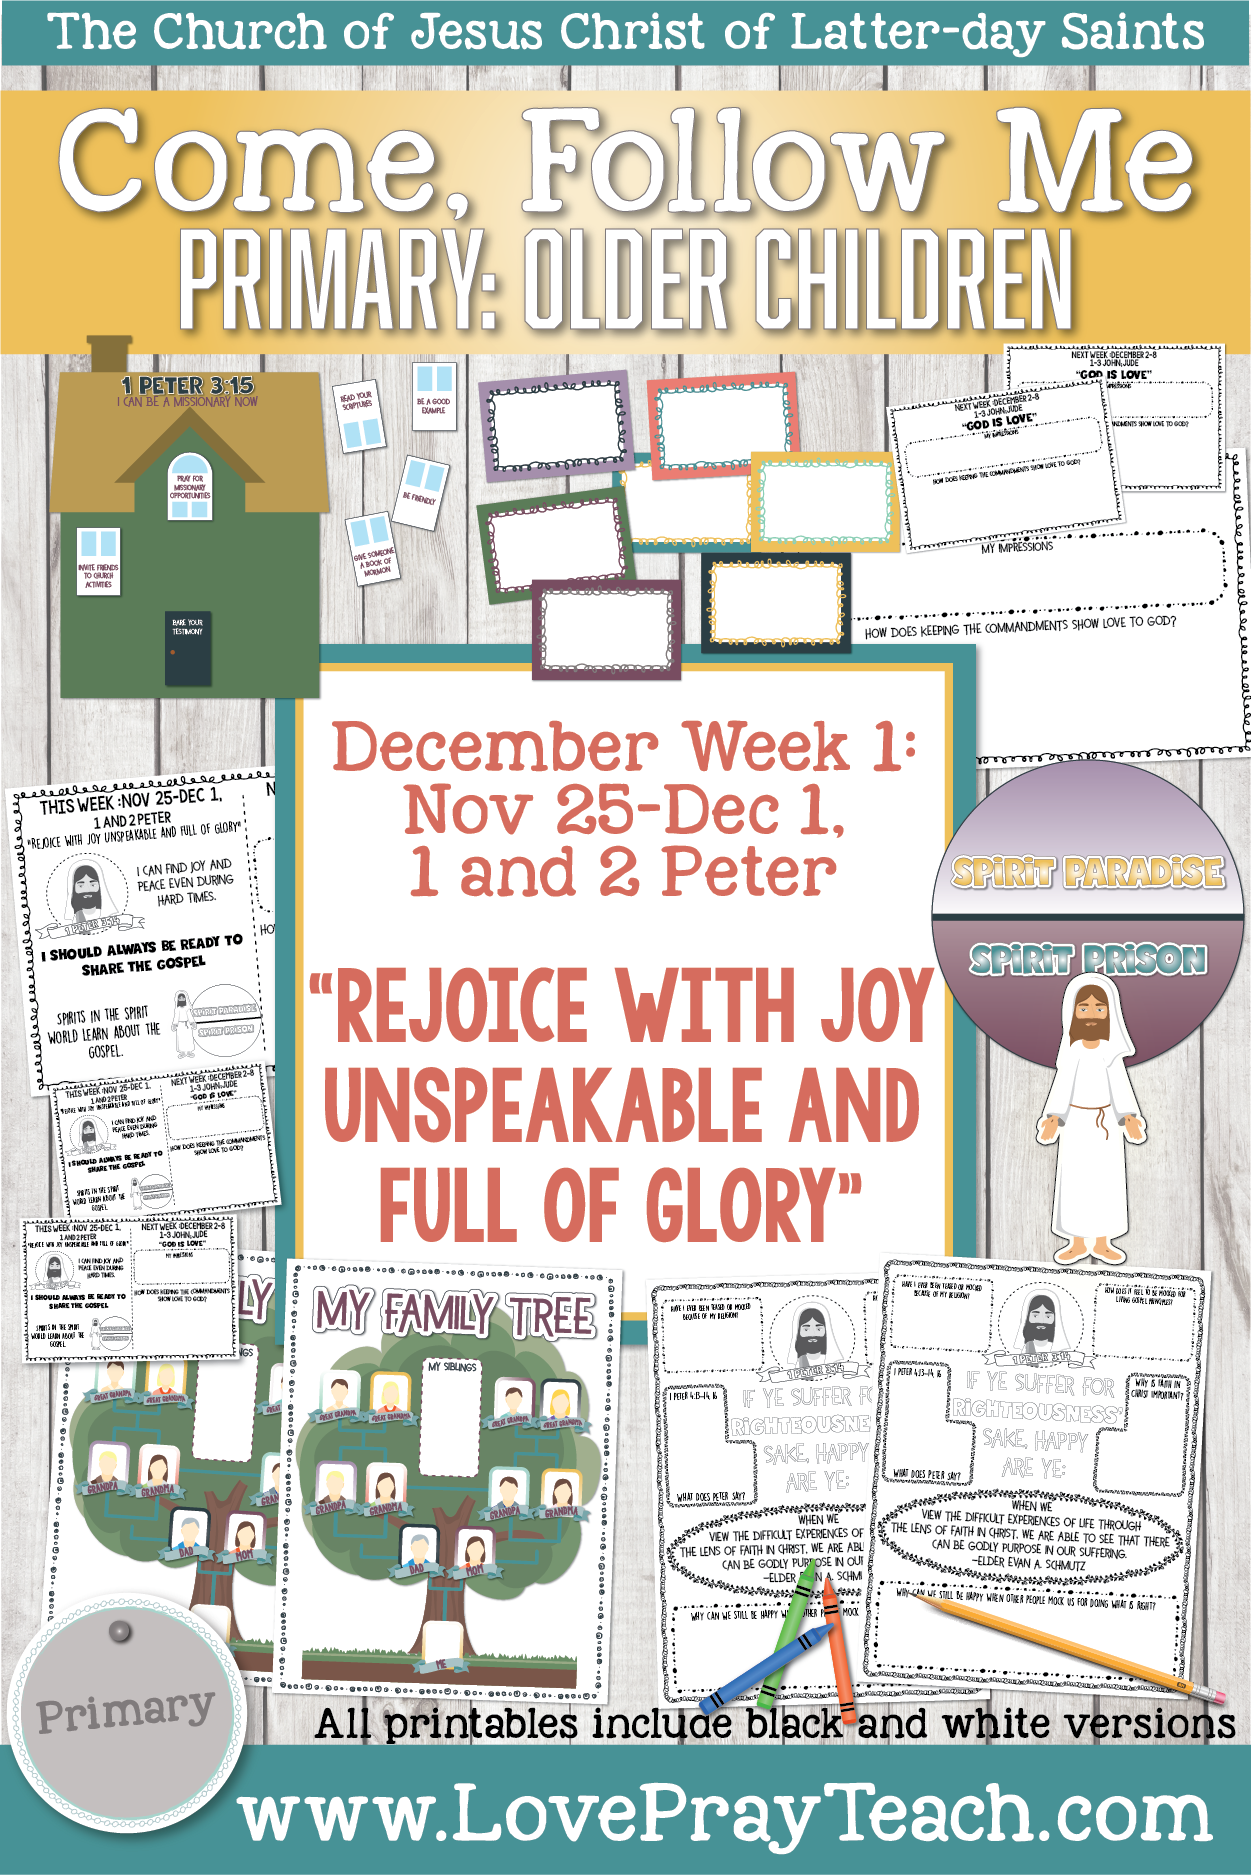 """Come, Follow Me for Primary 2019- New Testament, December Week 1: Nov 25-Dec 1, 1 and 2 Peter; """"Rejoice With Joy Unspeakable and Full OF Glory"""" OLDER CHILDREN"""